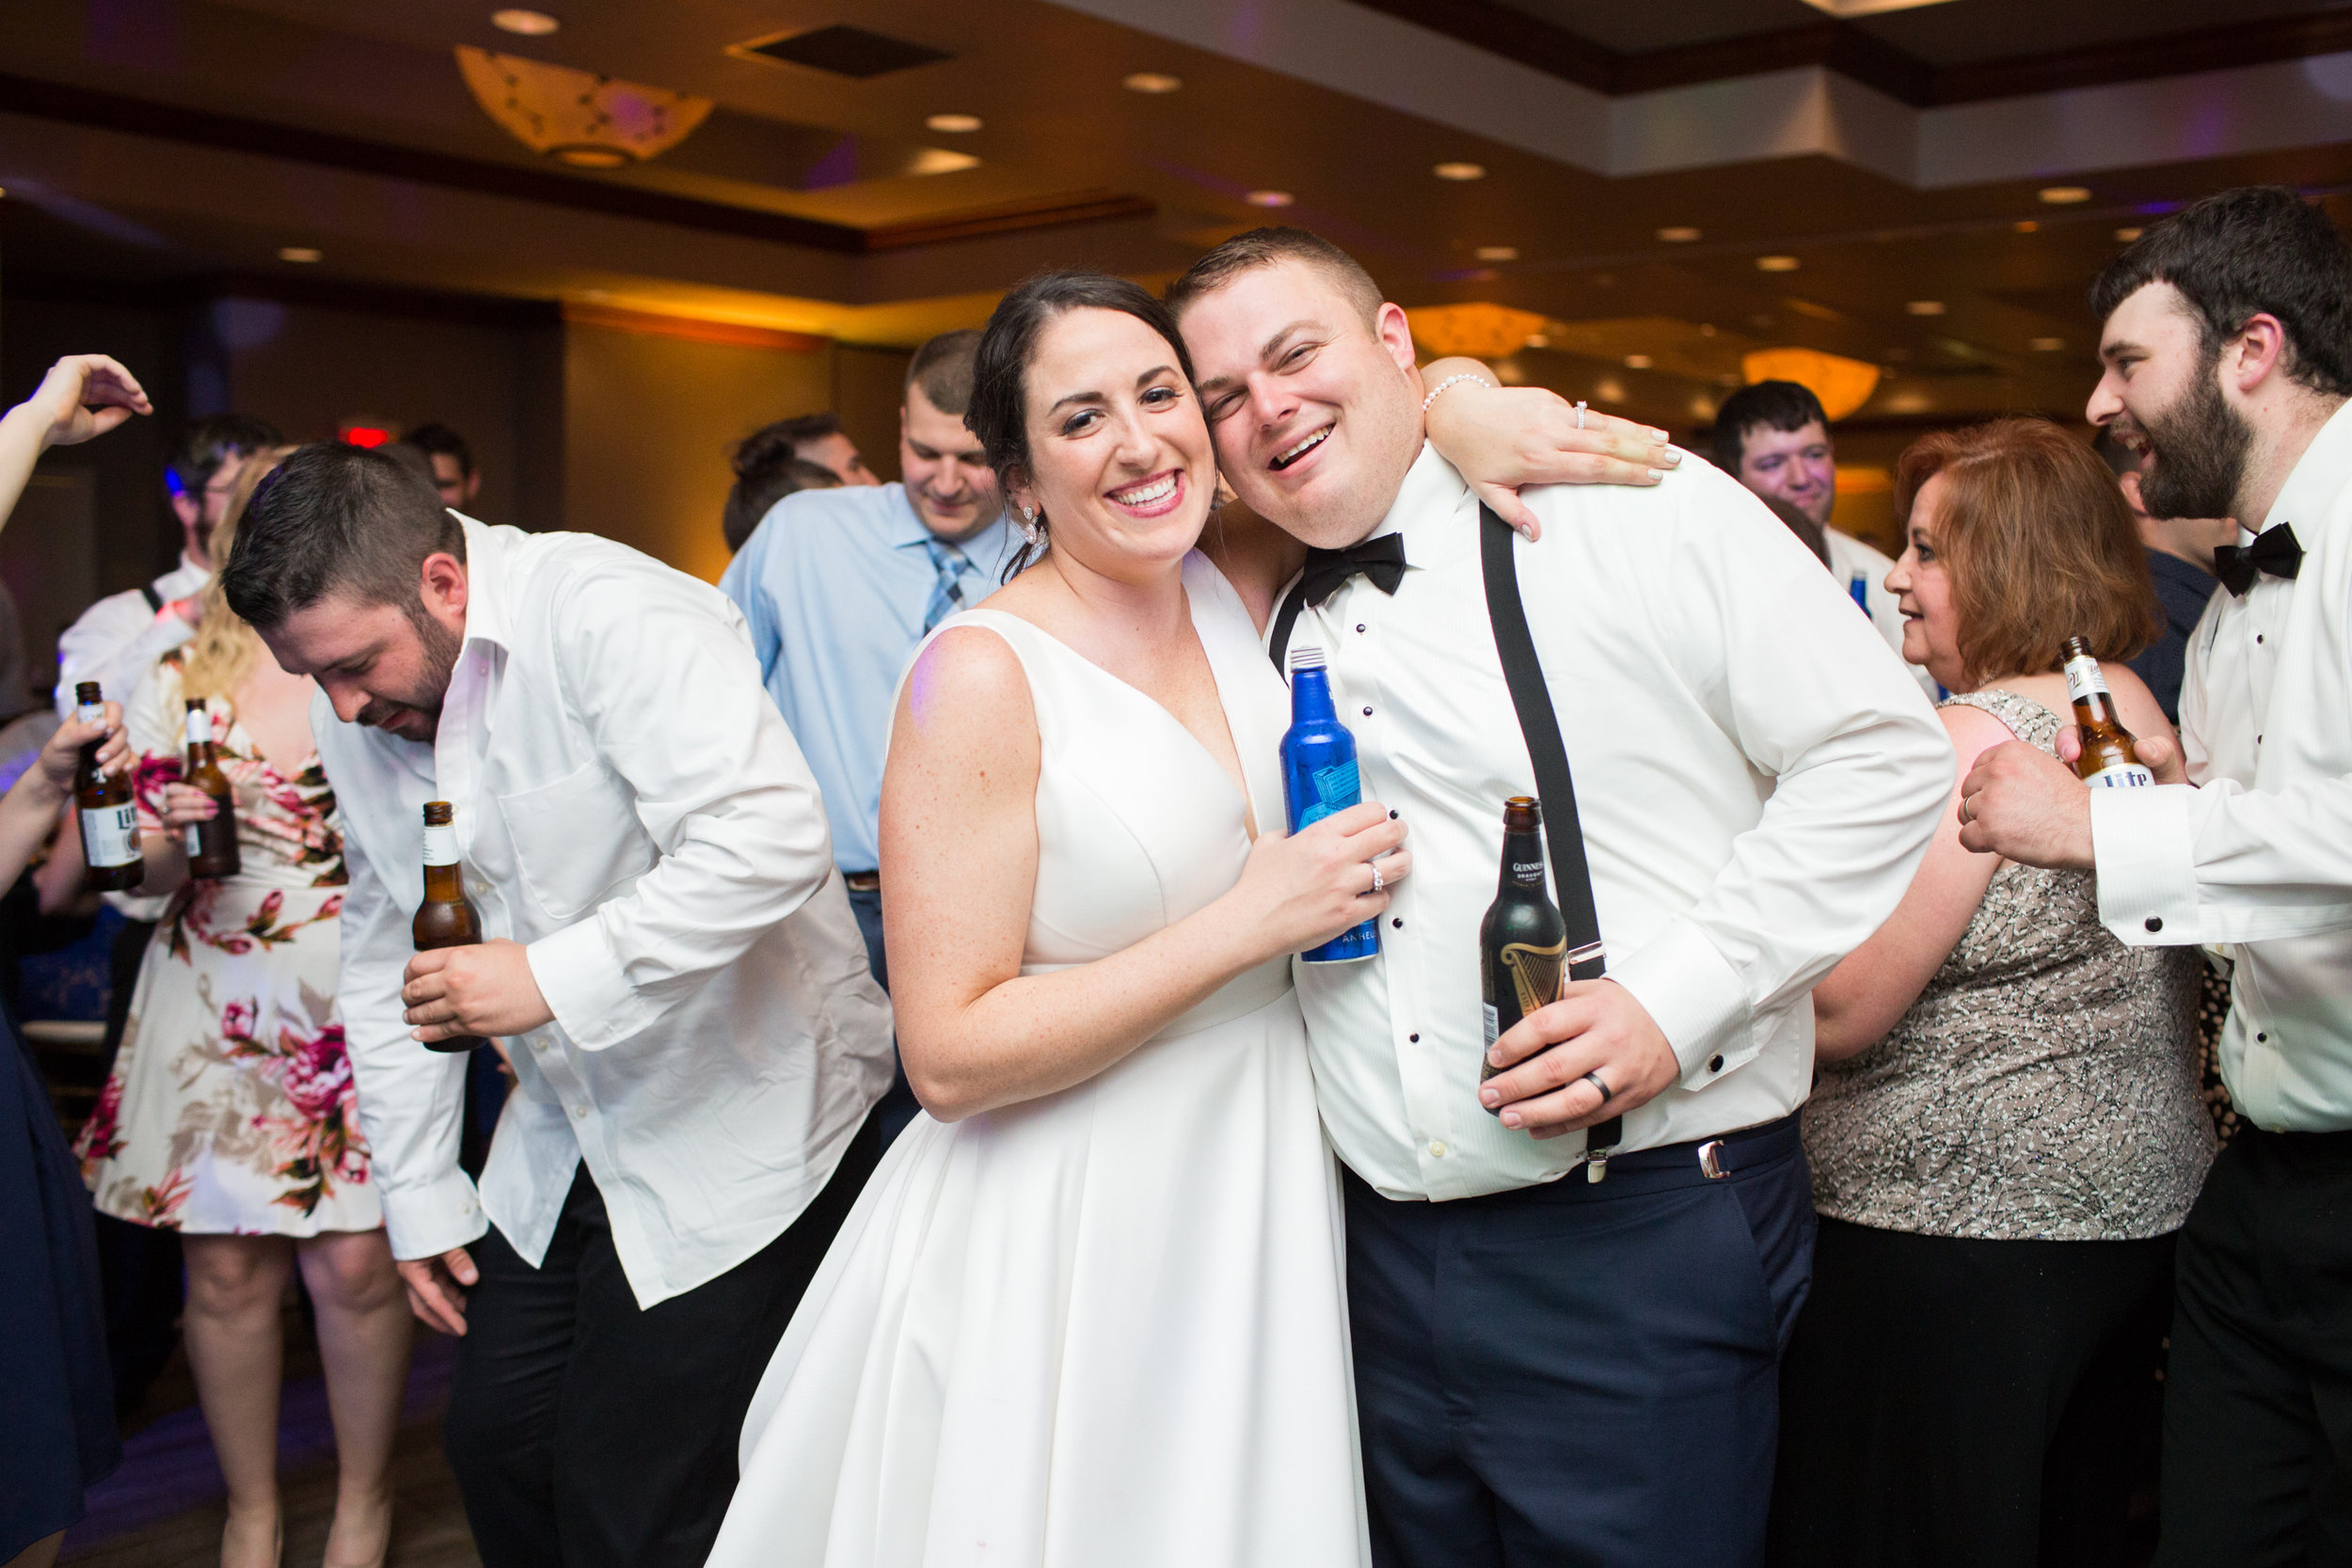 Hilton Scranton PA Wedding Photos_JDP-156.jpg